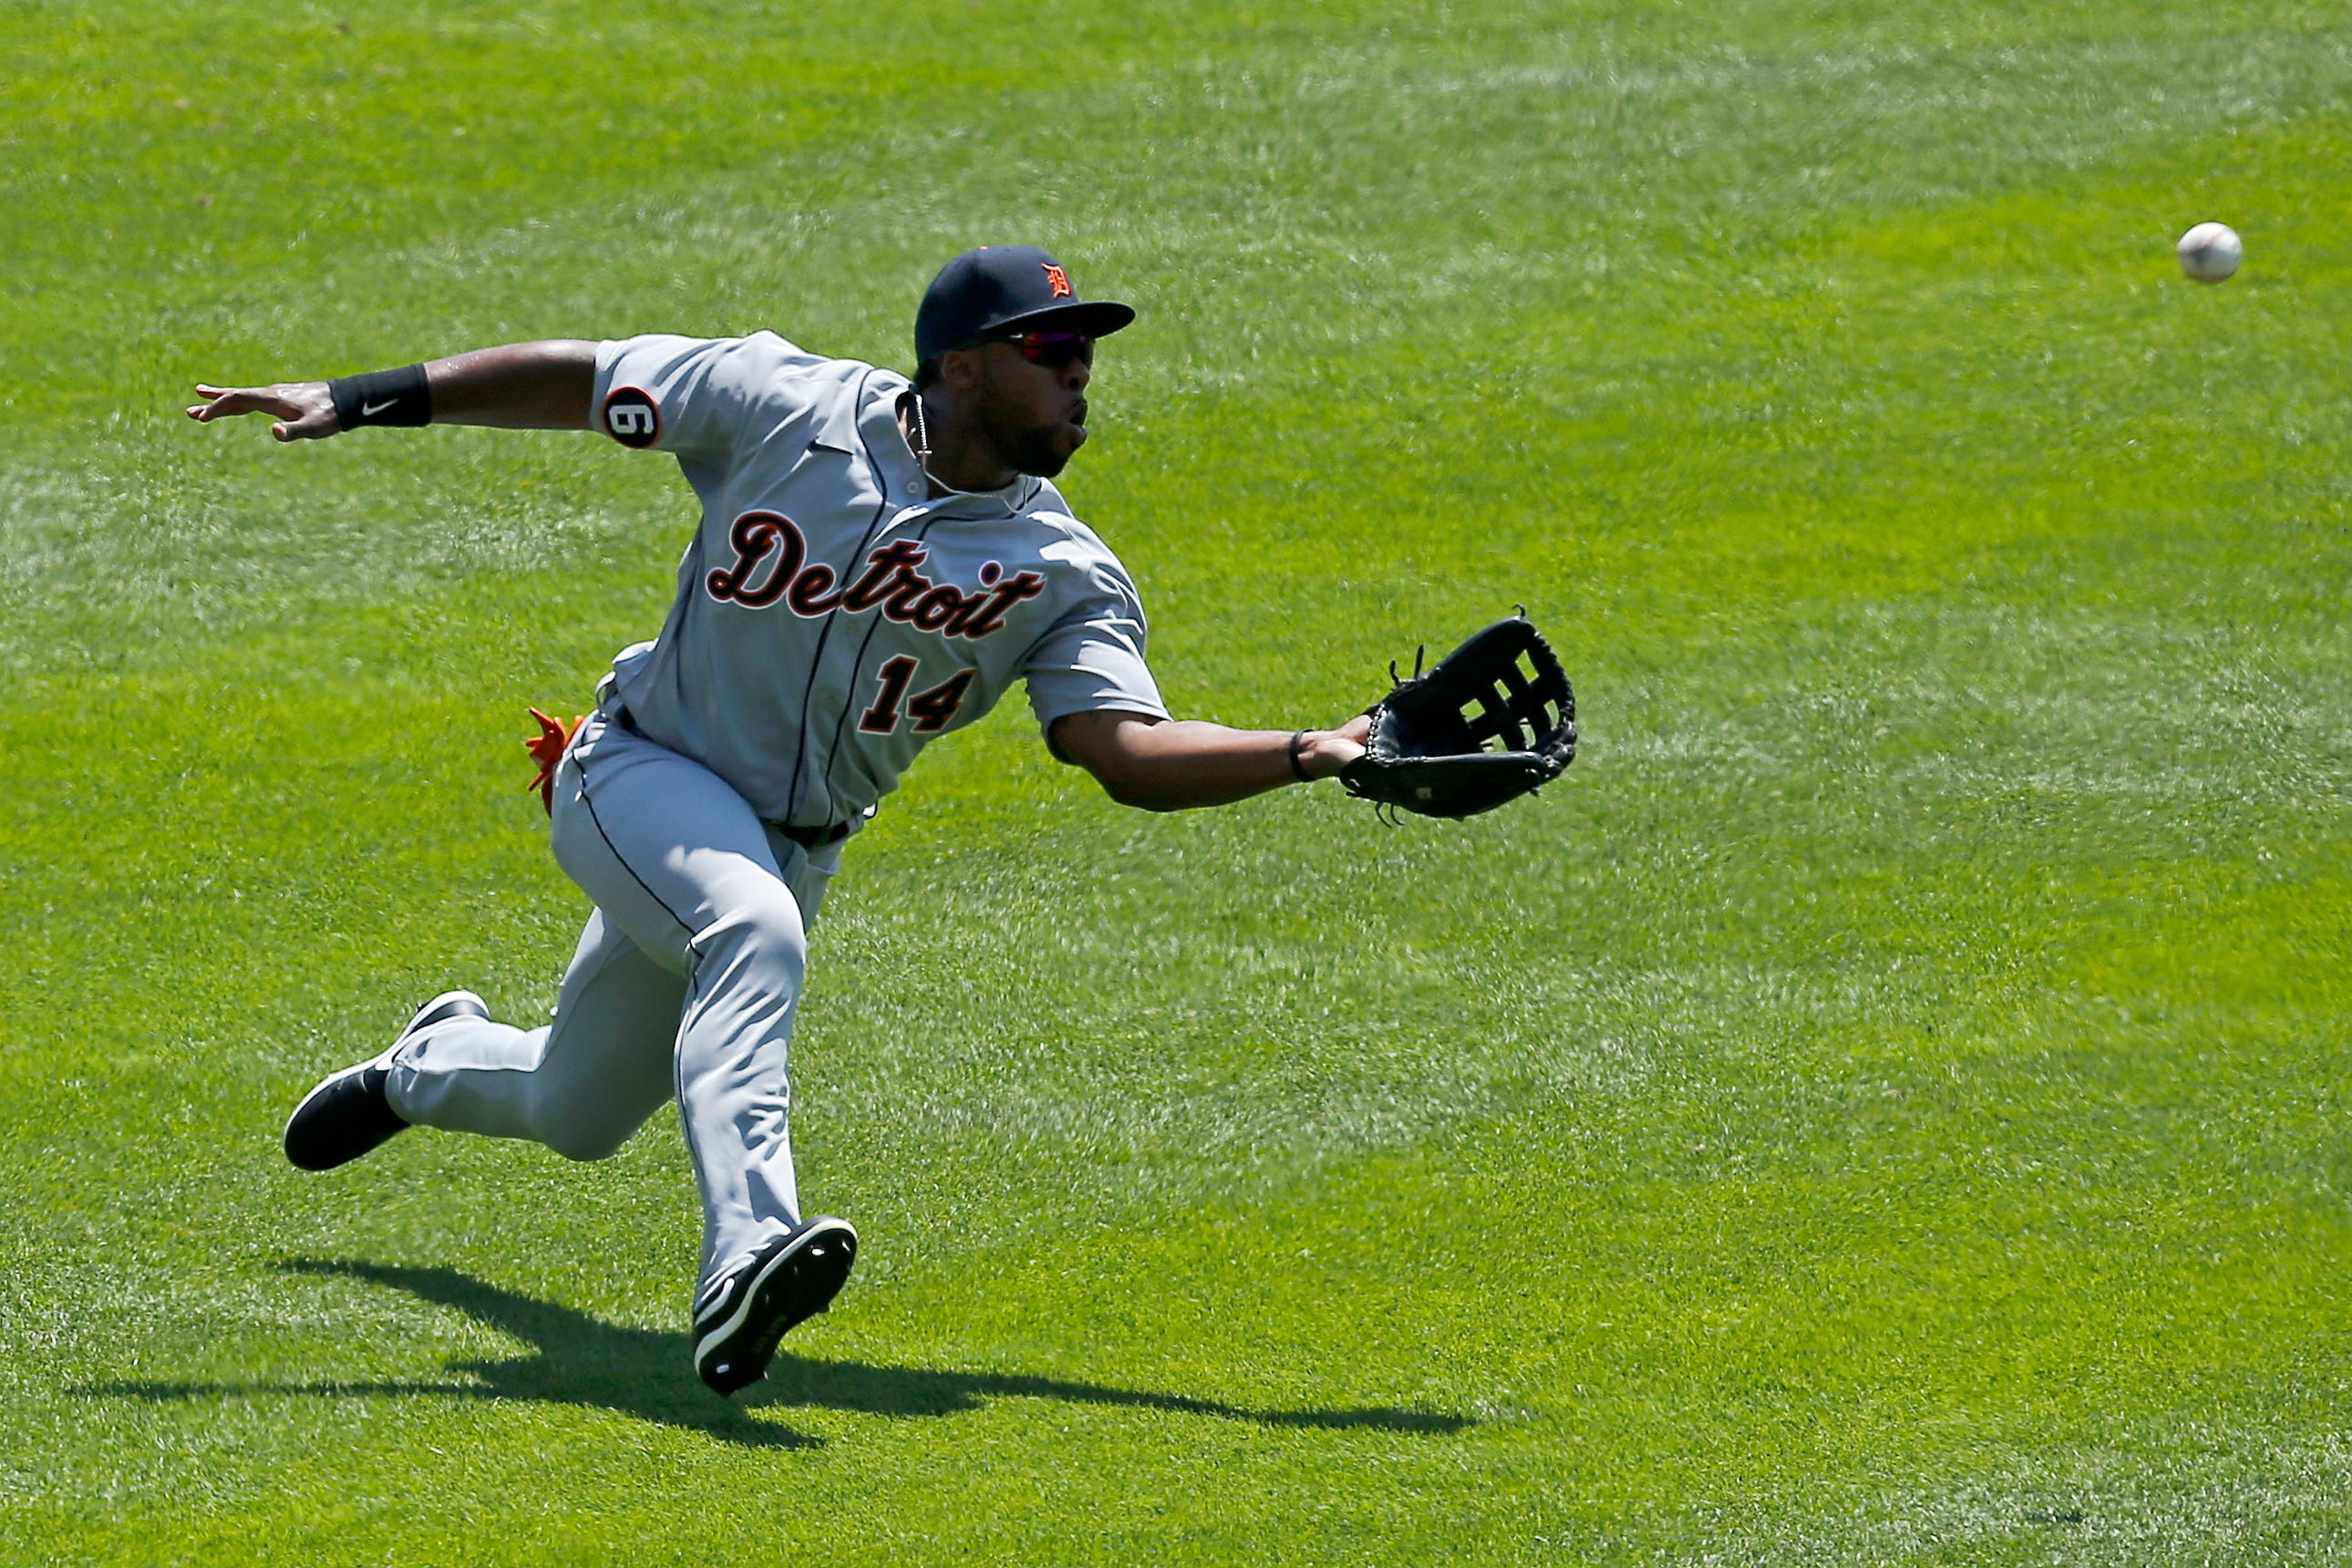 Detroit Tigers left fielder Christin Stewart makes a sliding catch on a line drive off the bat of Cincinnati Reds first baseman Joey Votto in the first inning at Great American Ball Park in Cincinnati on Sunday, July 26, 2020.